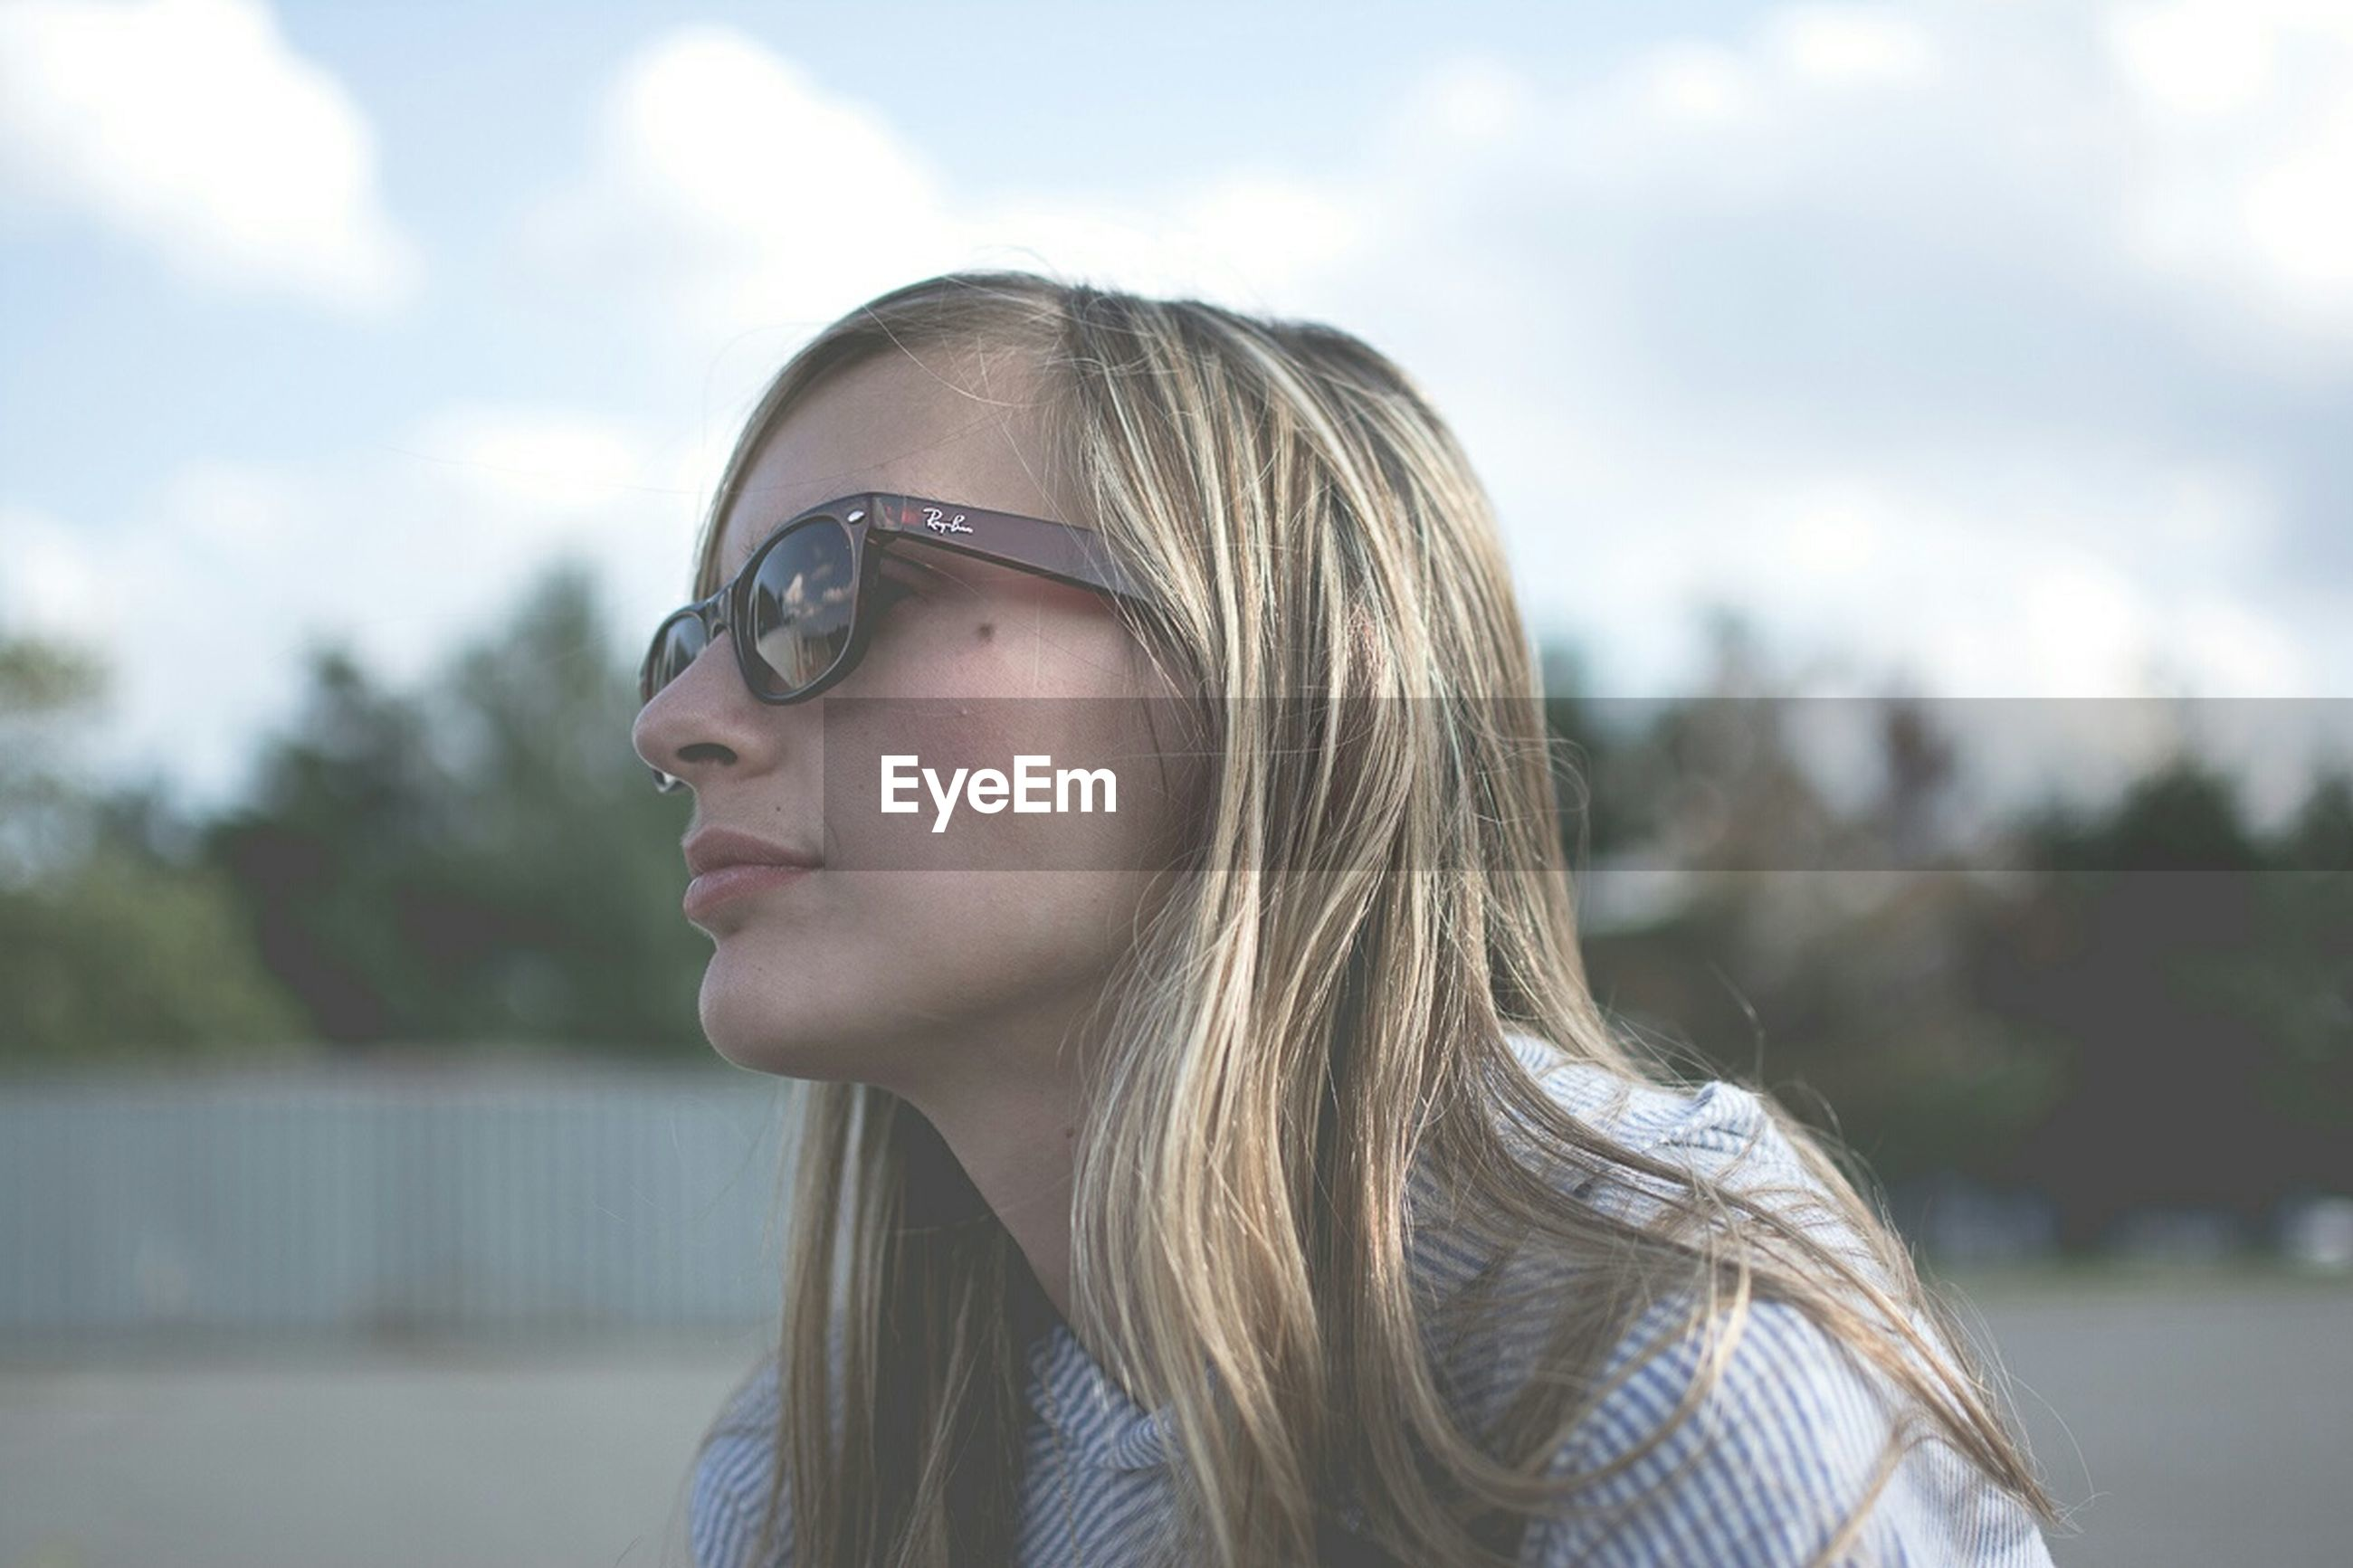 headshot, focus on foreground, young adult, lifestyles, person, young women, leisure activity, close-up, head and shoulders, portrait, front view, looking at camera, sunglasses, human face, long hair, sky, casual clothing